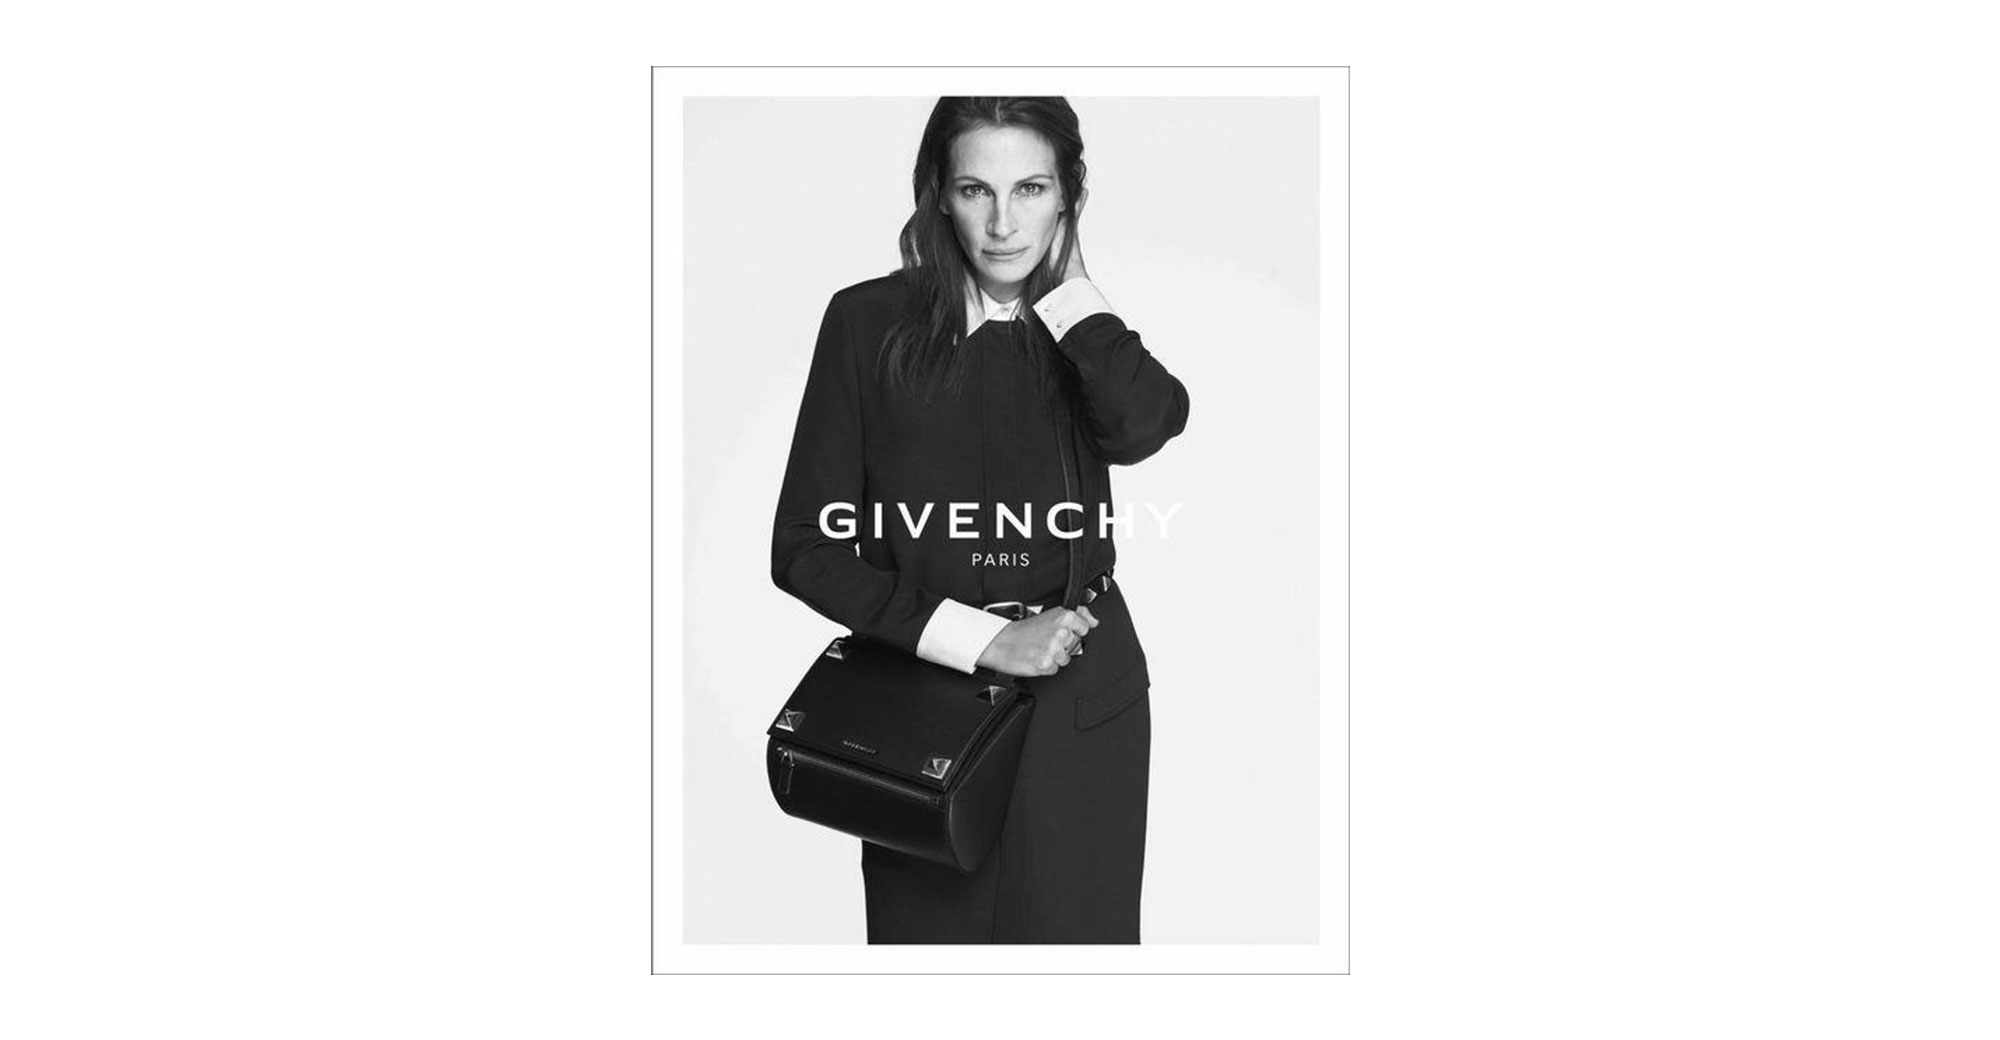 Givenchy тоже